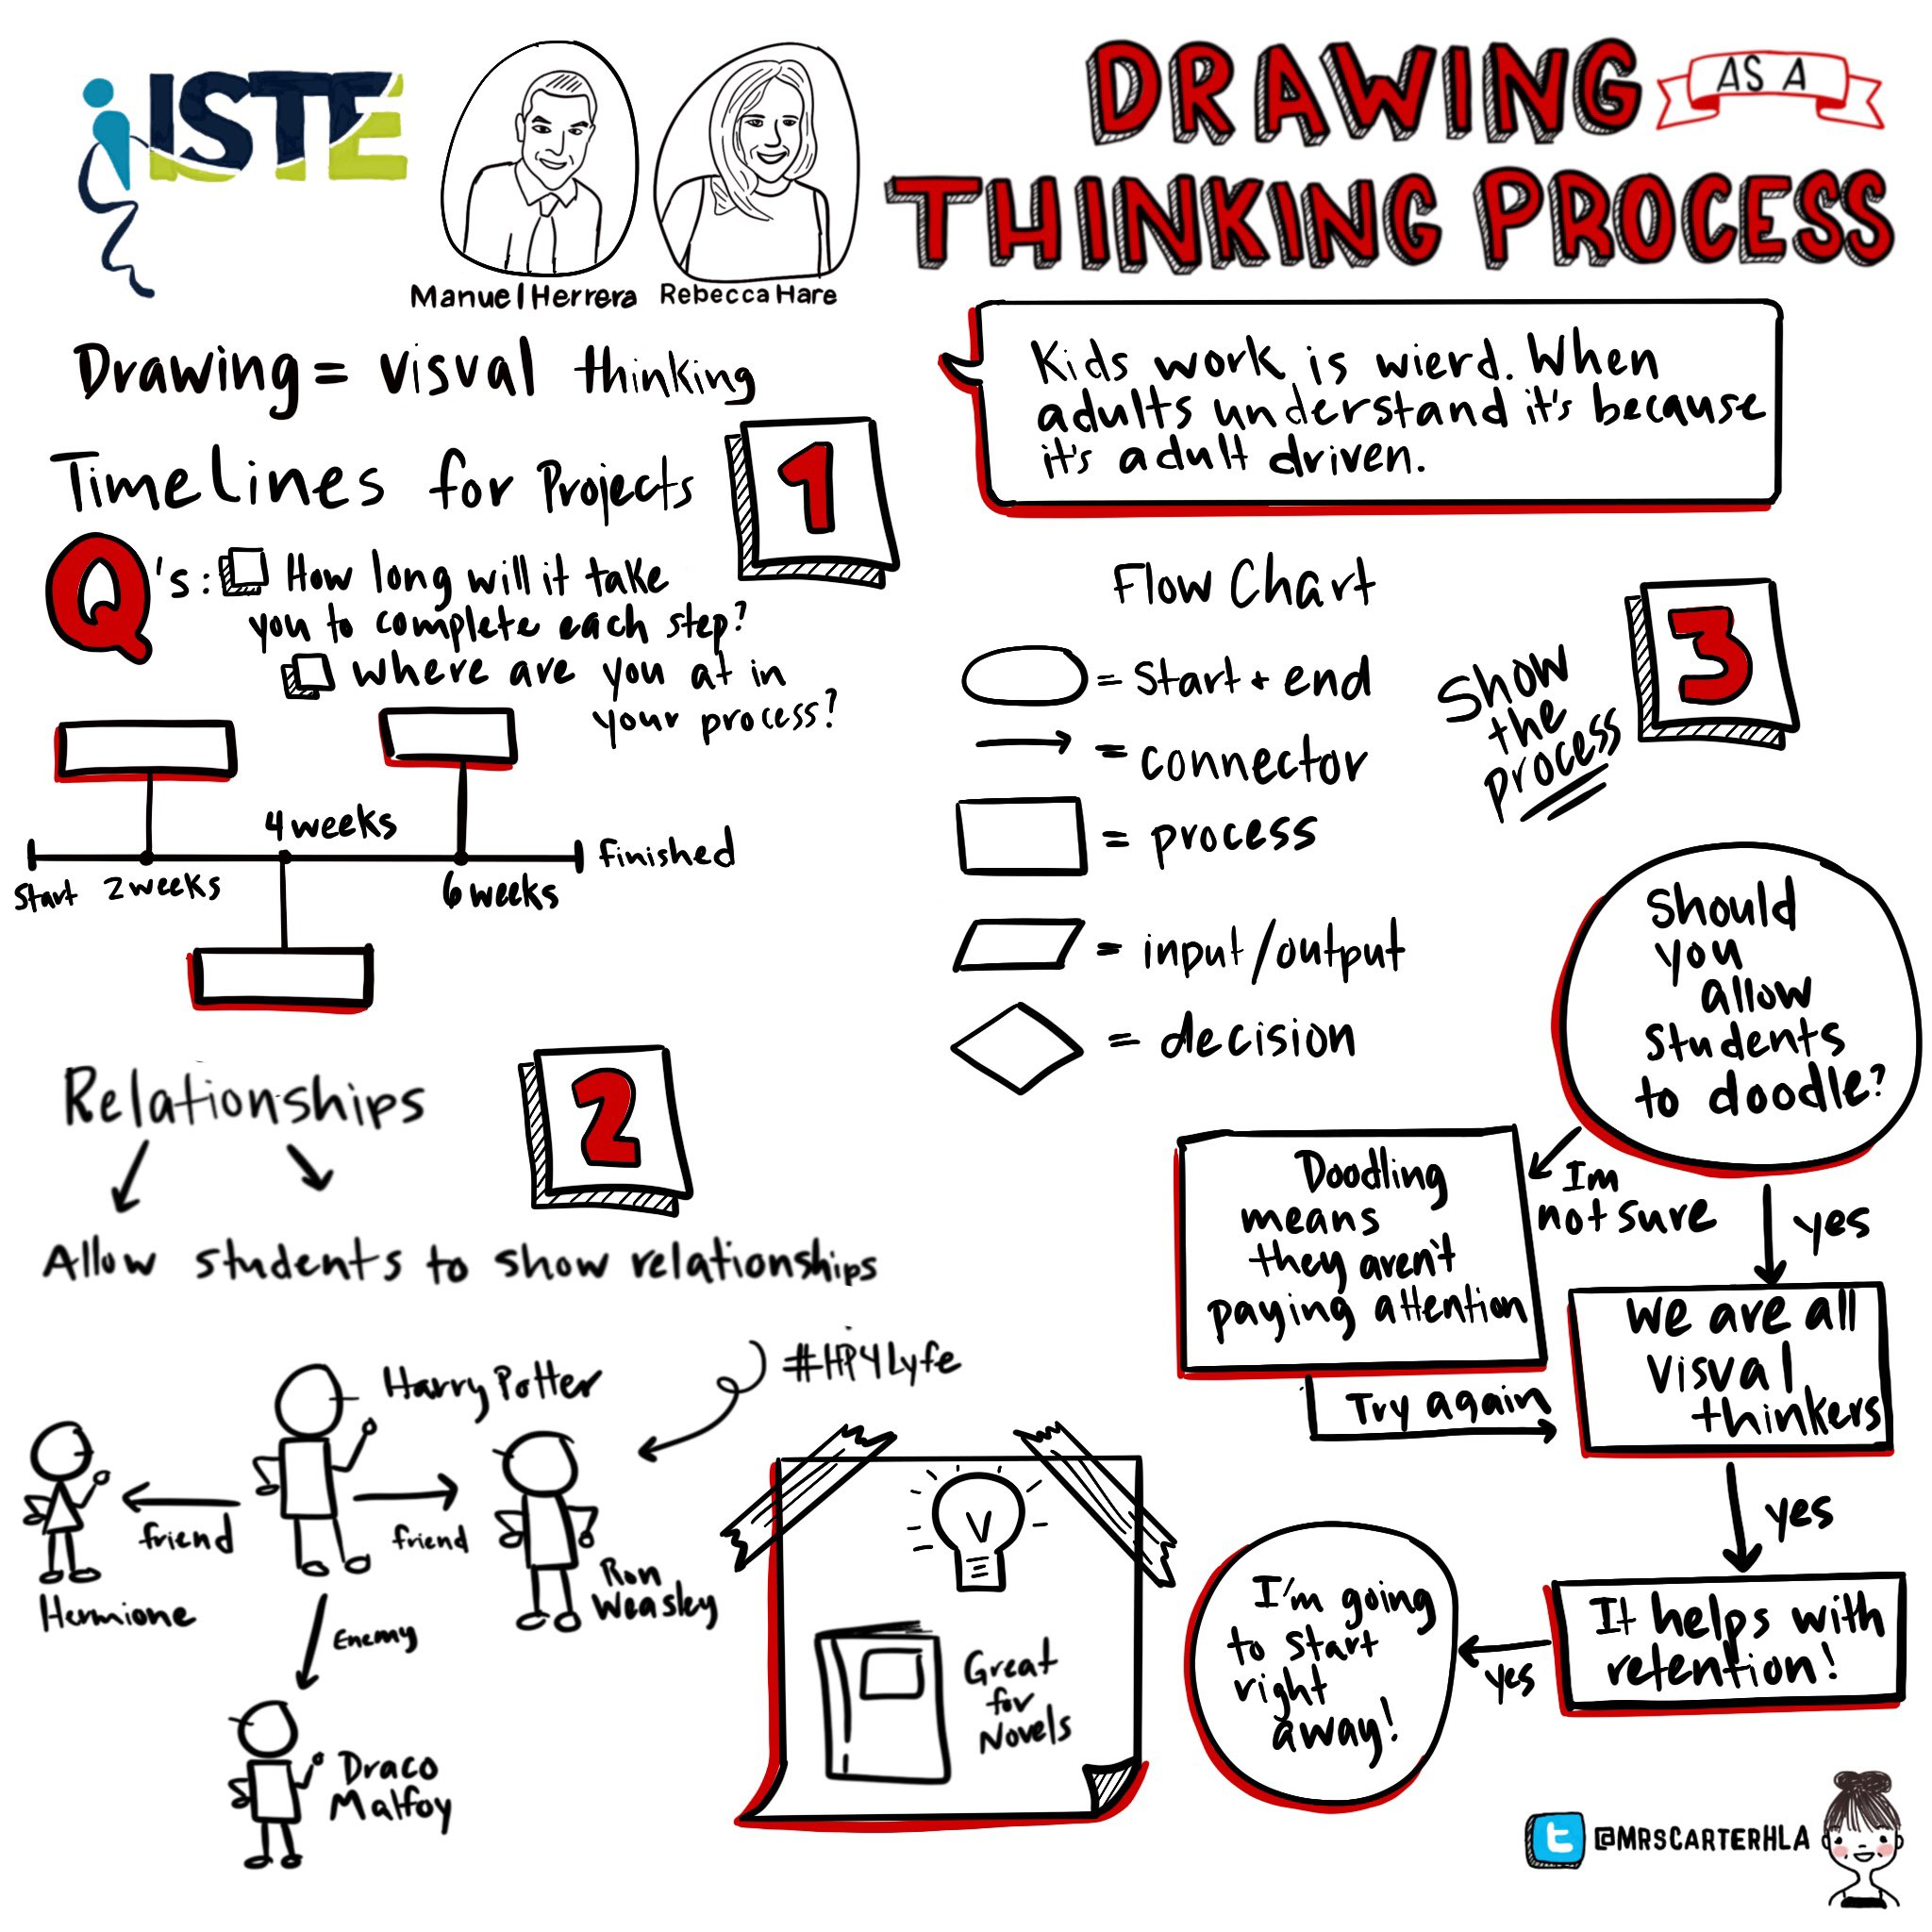 Some new ideas on visual thinking! Thanks @manuelherrera33 and @RLH_DesignED #iste18 #sketchiste #EveryoneCanCreate https://t.co/DaFJYFL65T